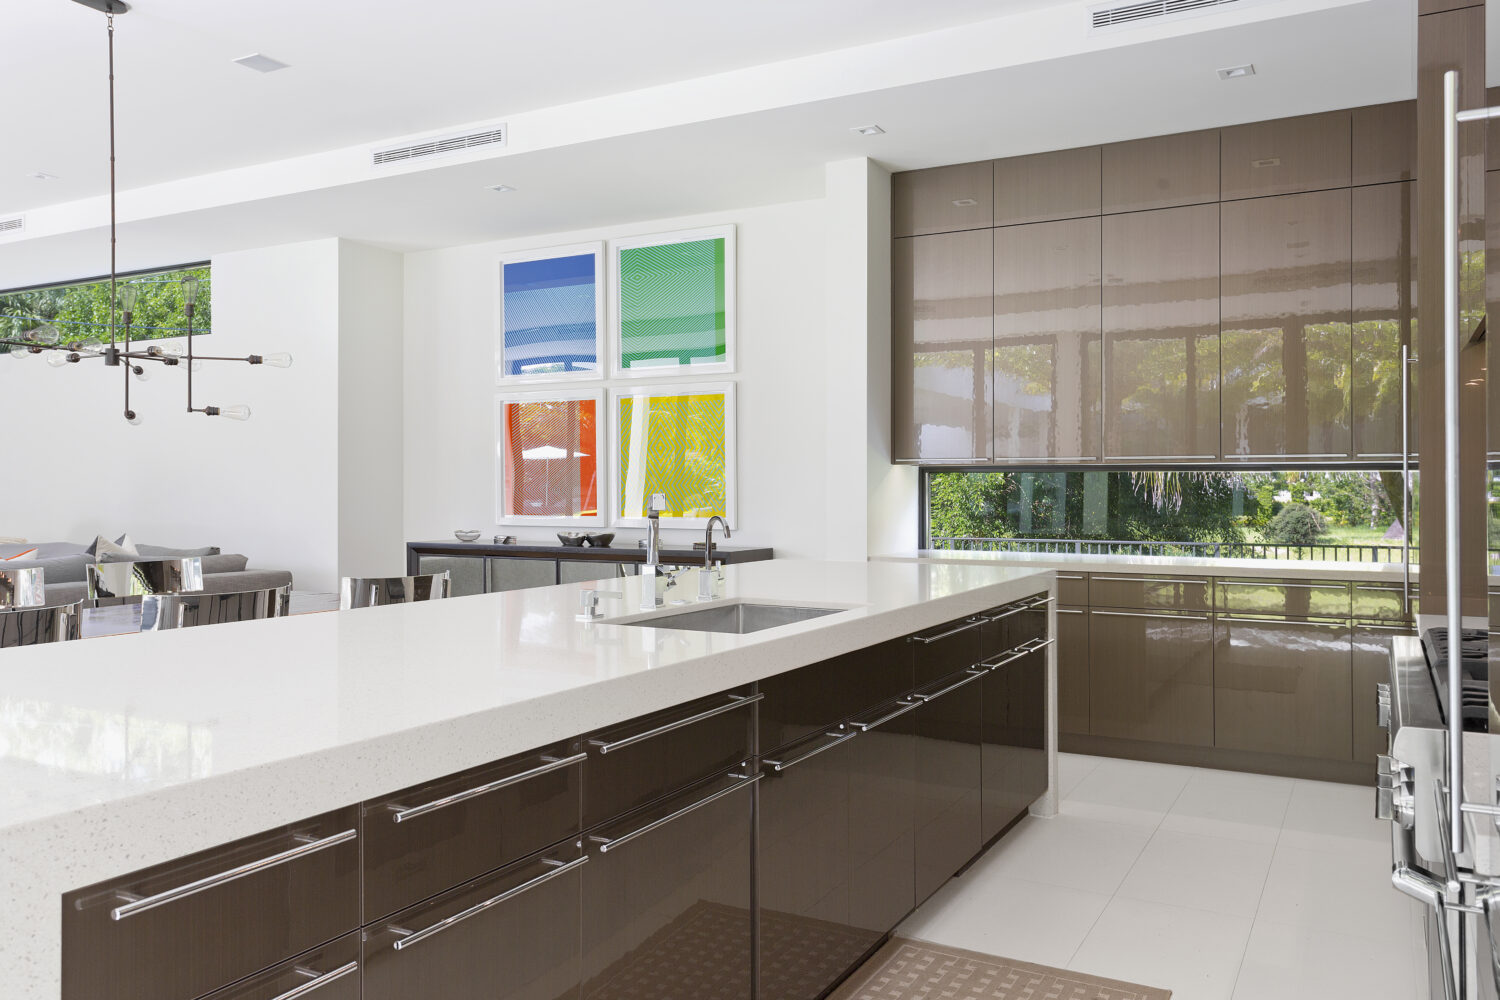 Contemporary Dura Supreme kitchen design by Danny McMullen of Distinguished Kitchens and Baths.